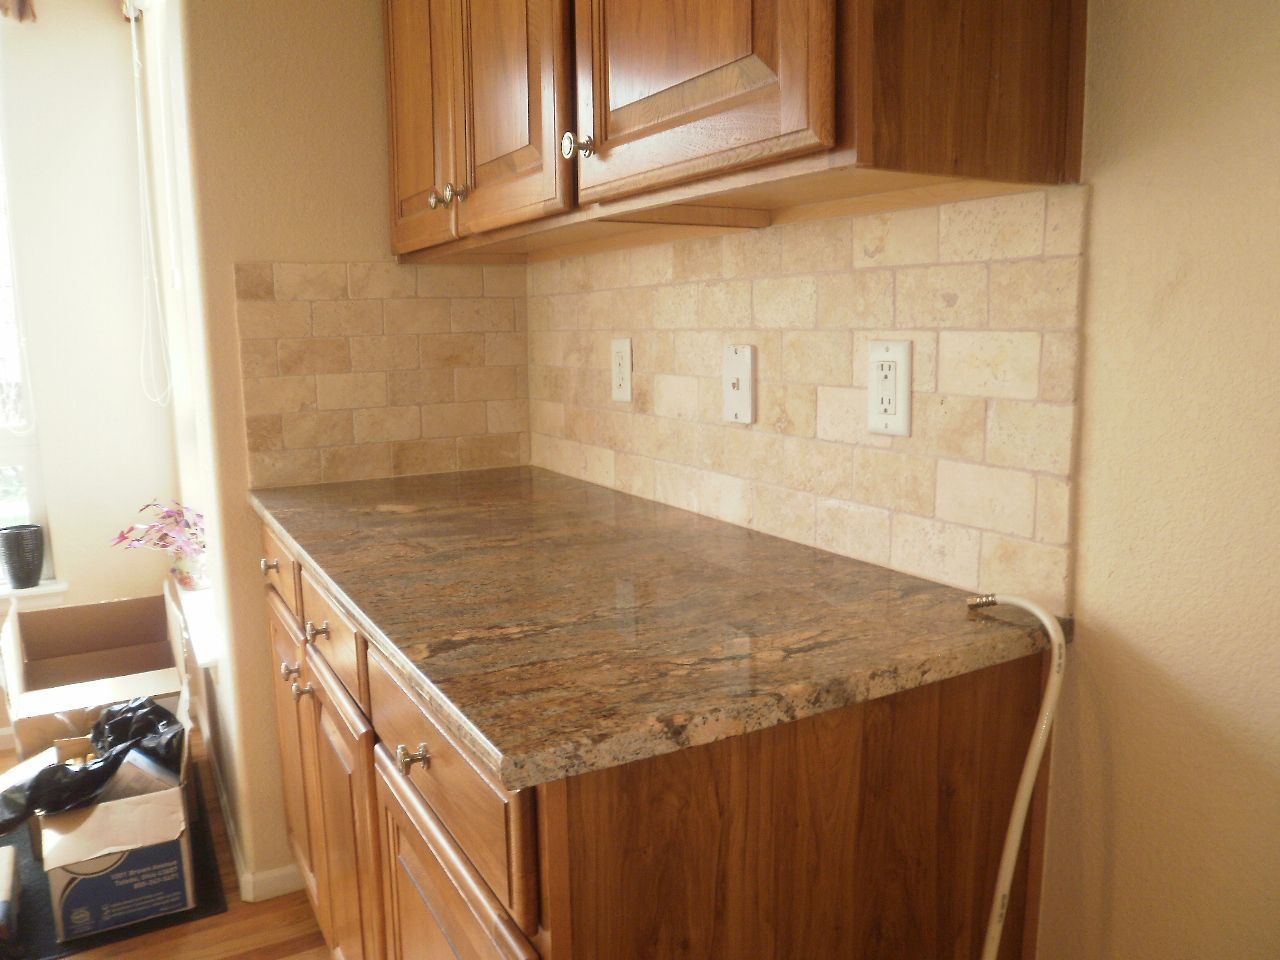 countertop backsplash options | ... Range Backsplash): 3x6 Tumbled ...